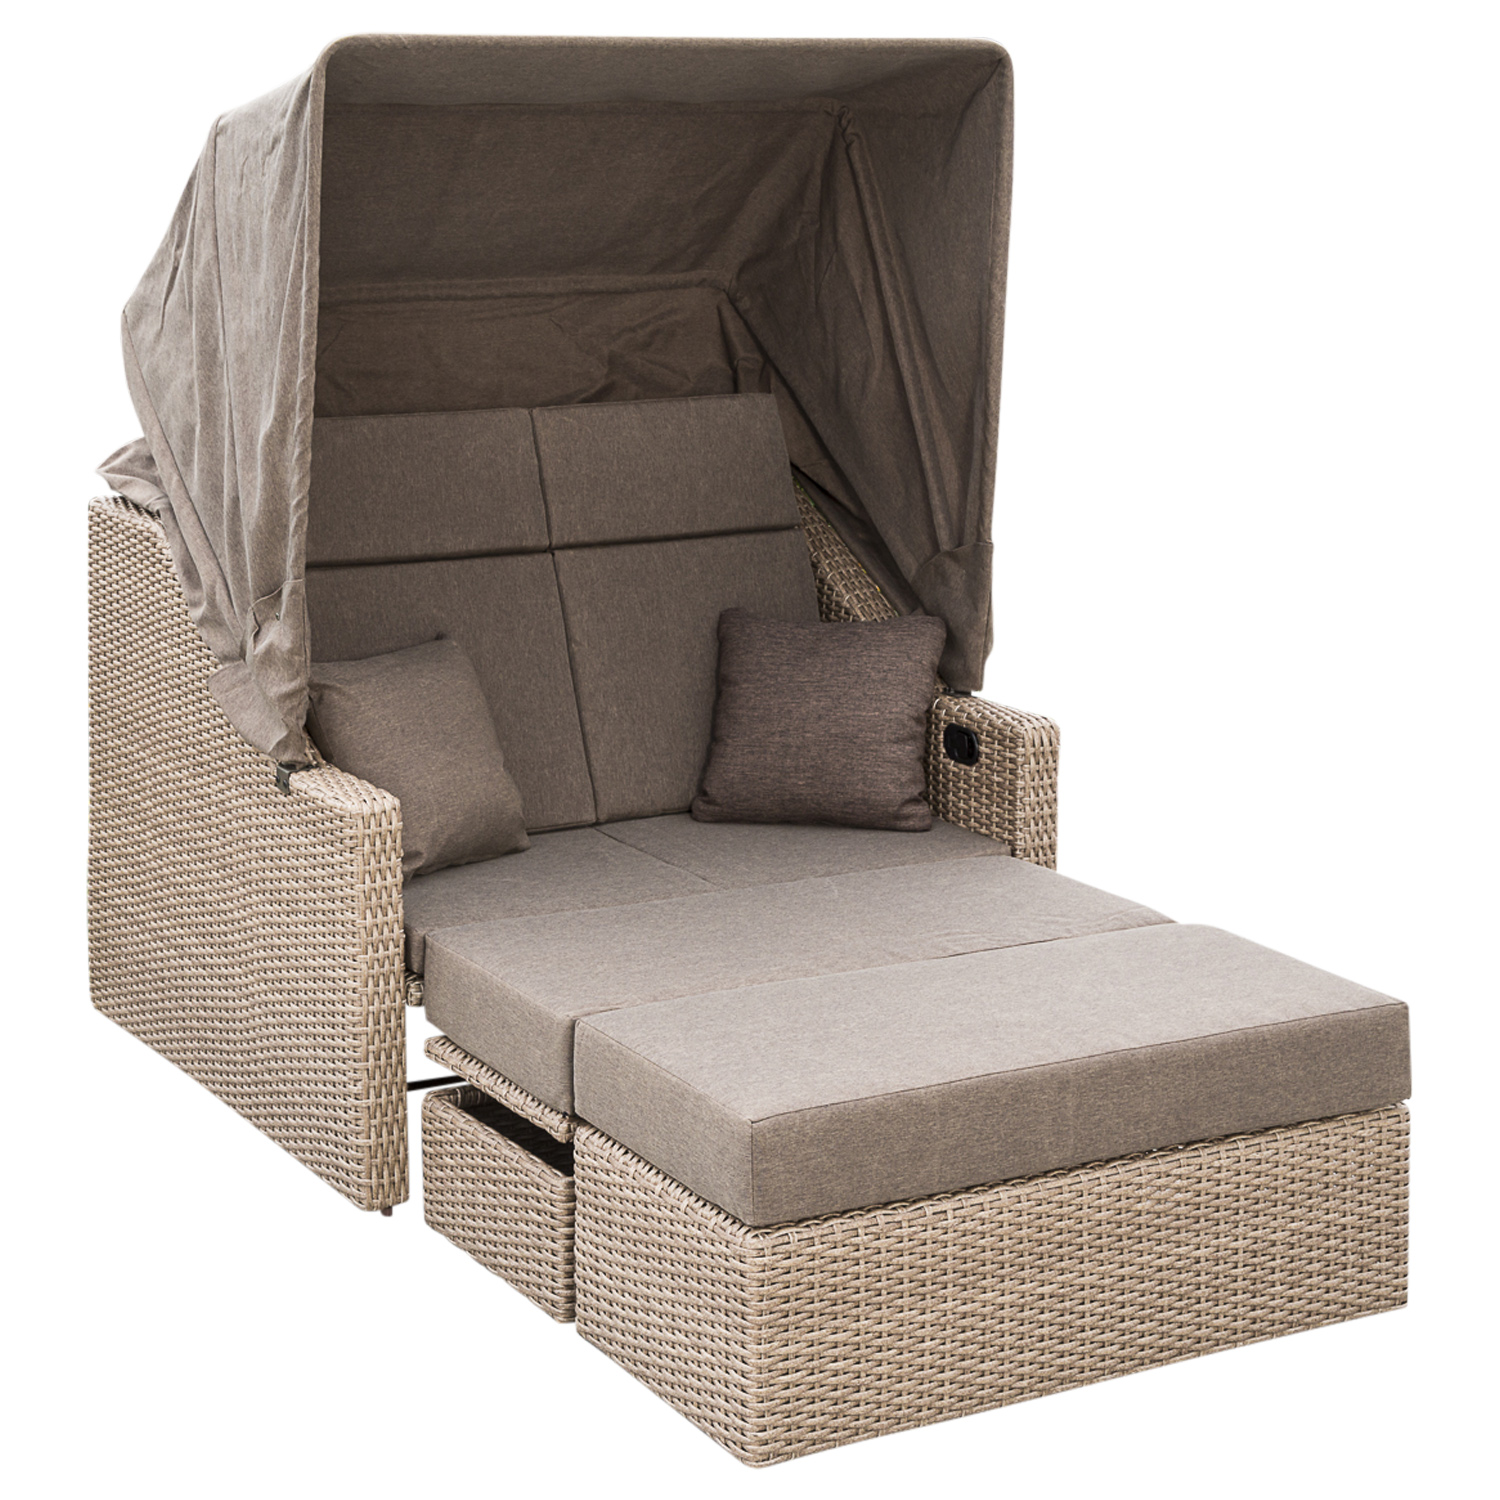 gartenliege gartensofa doppelliege gartenm bel liegen rimini rattan naturfarben ebay. Black Bedroom Furniture Sets. Home Design Ideas